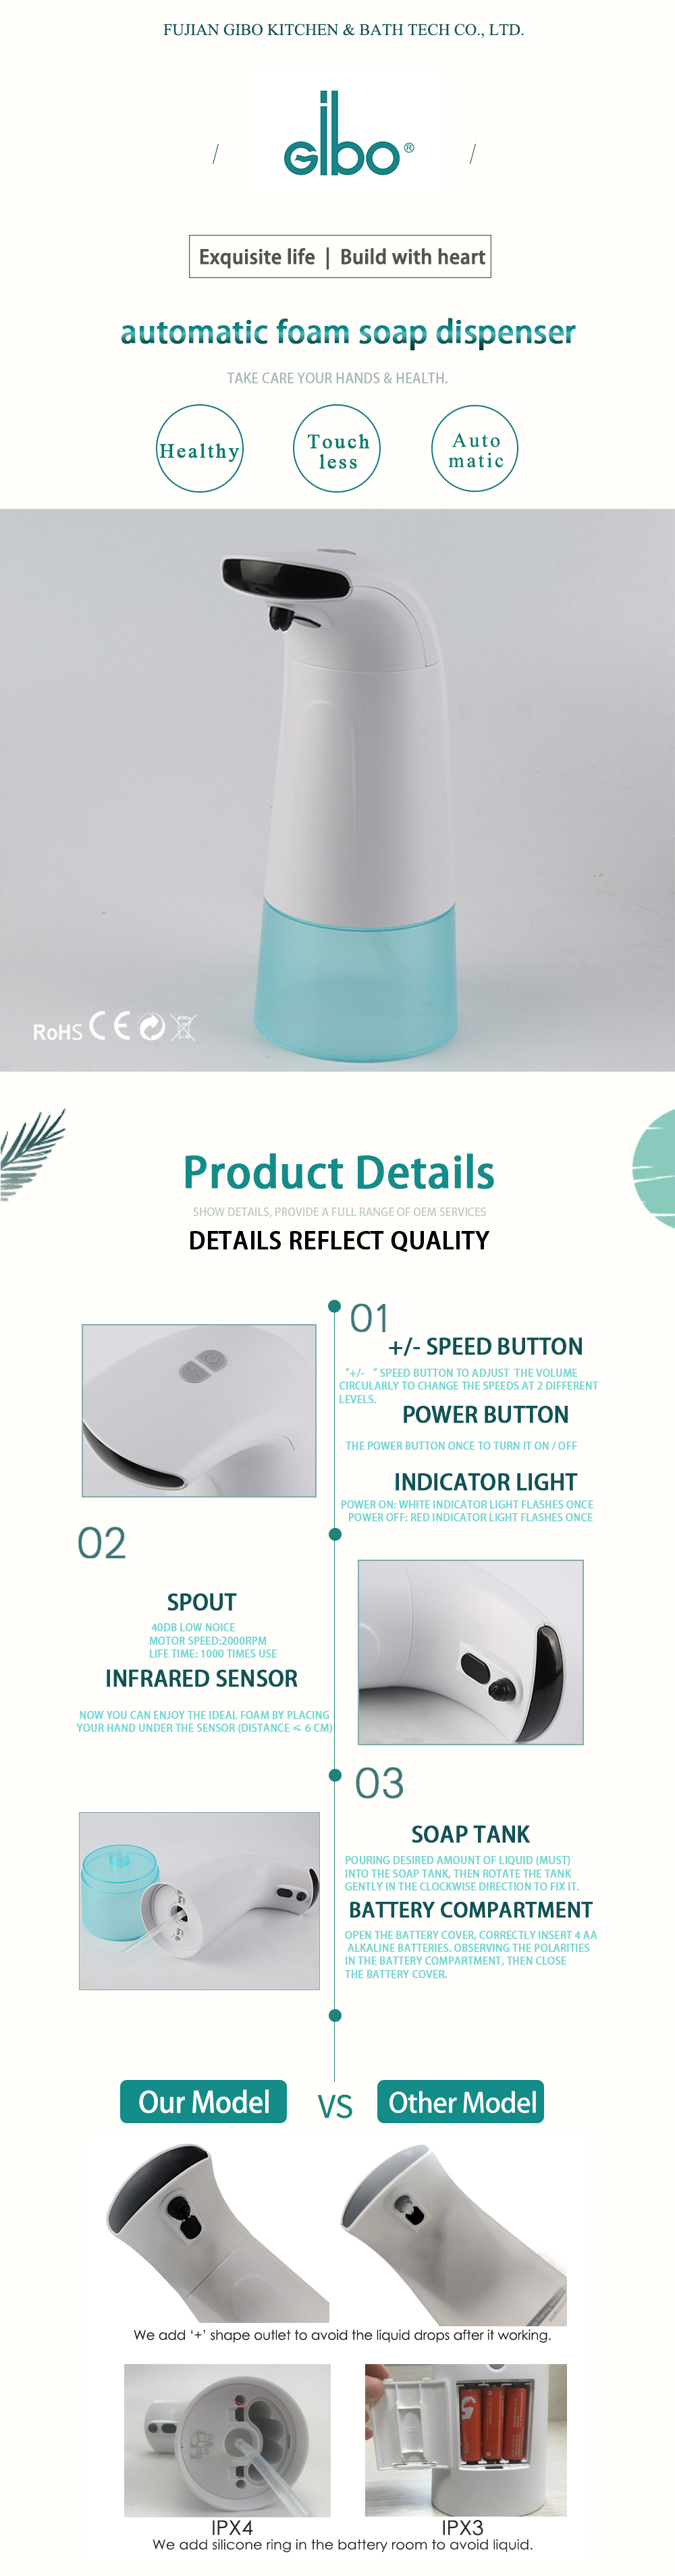 Electric-smart-auto-touchless-infrared-industrial-hospital-automatic-hands-free-sensor-stainless-steel-foam-soap-dispenser-Sets